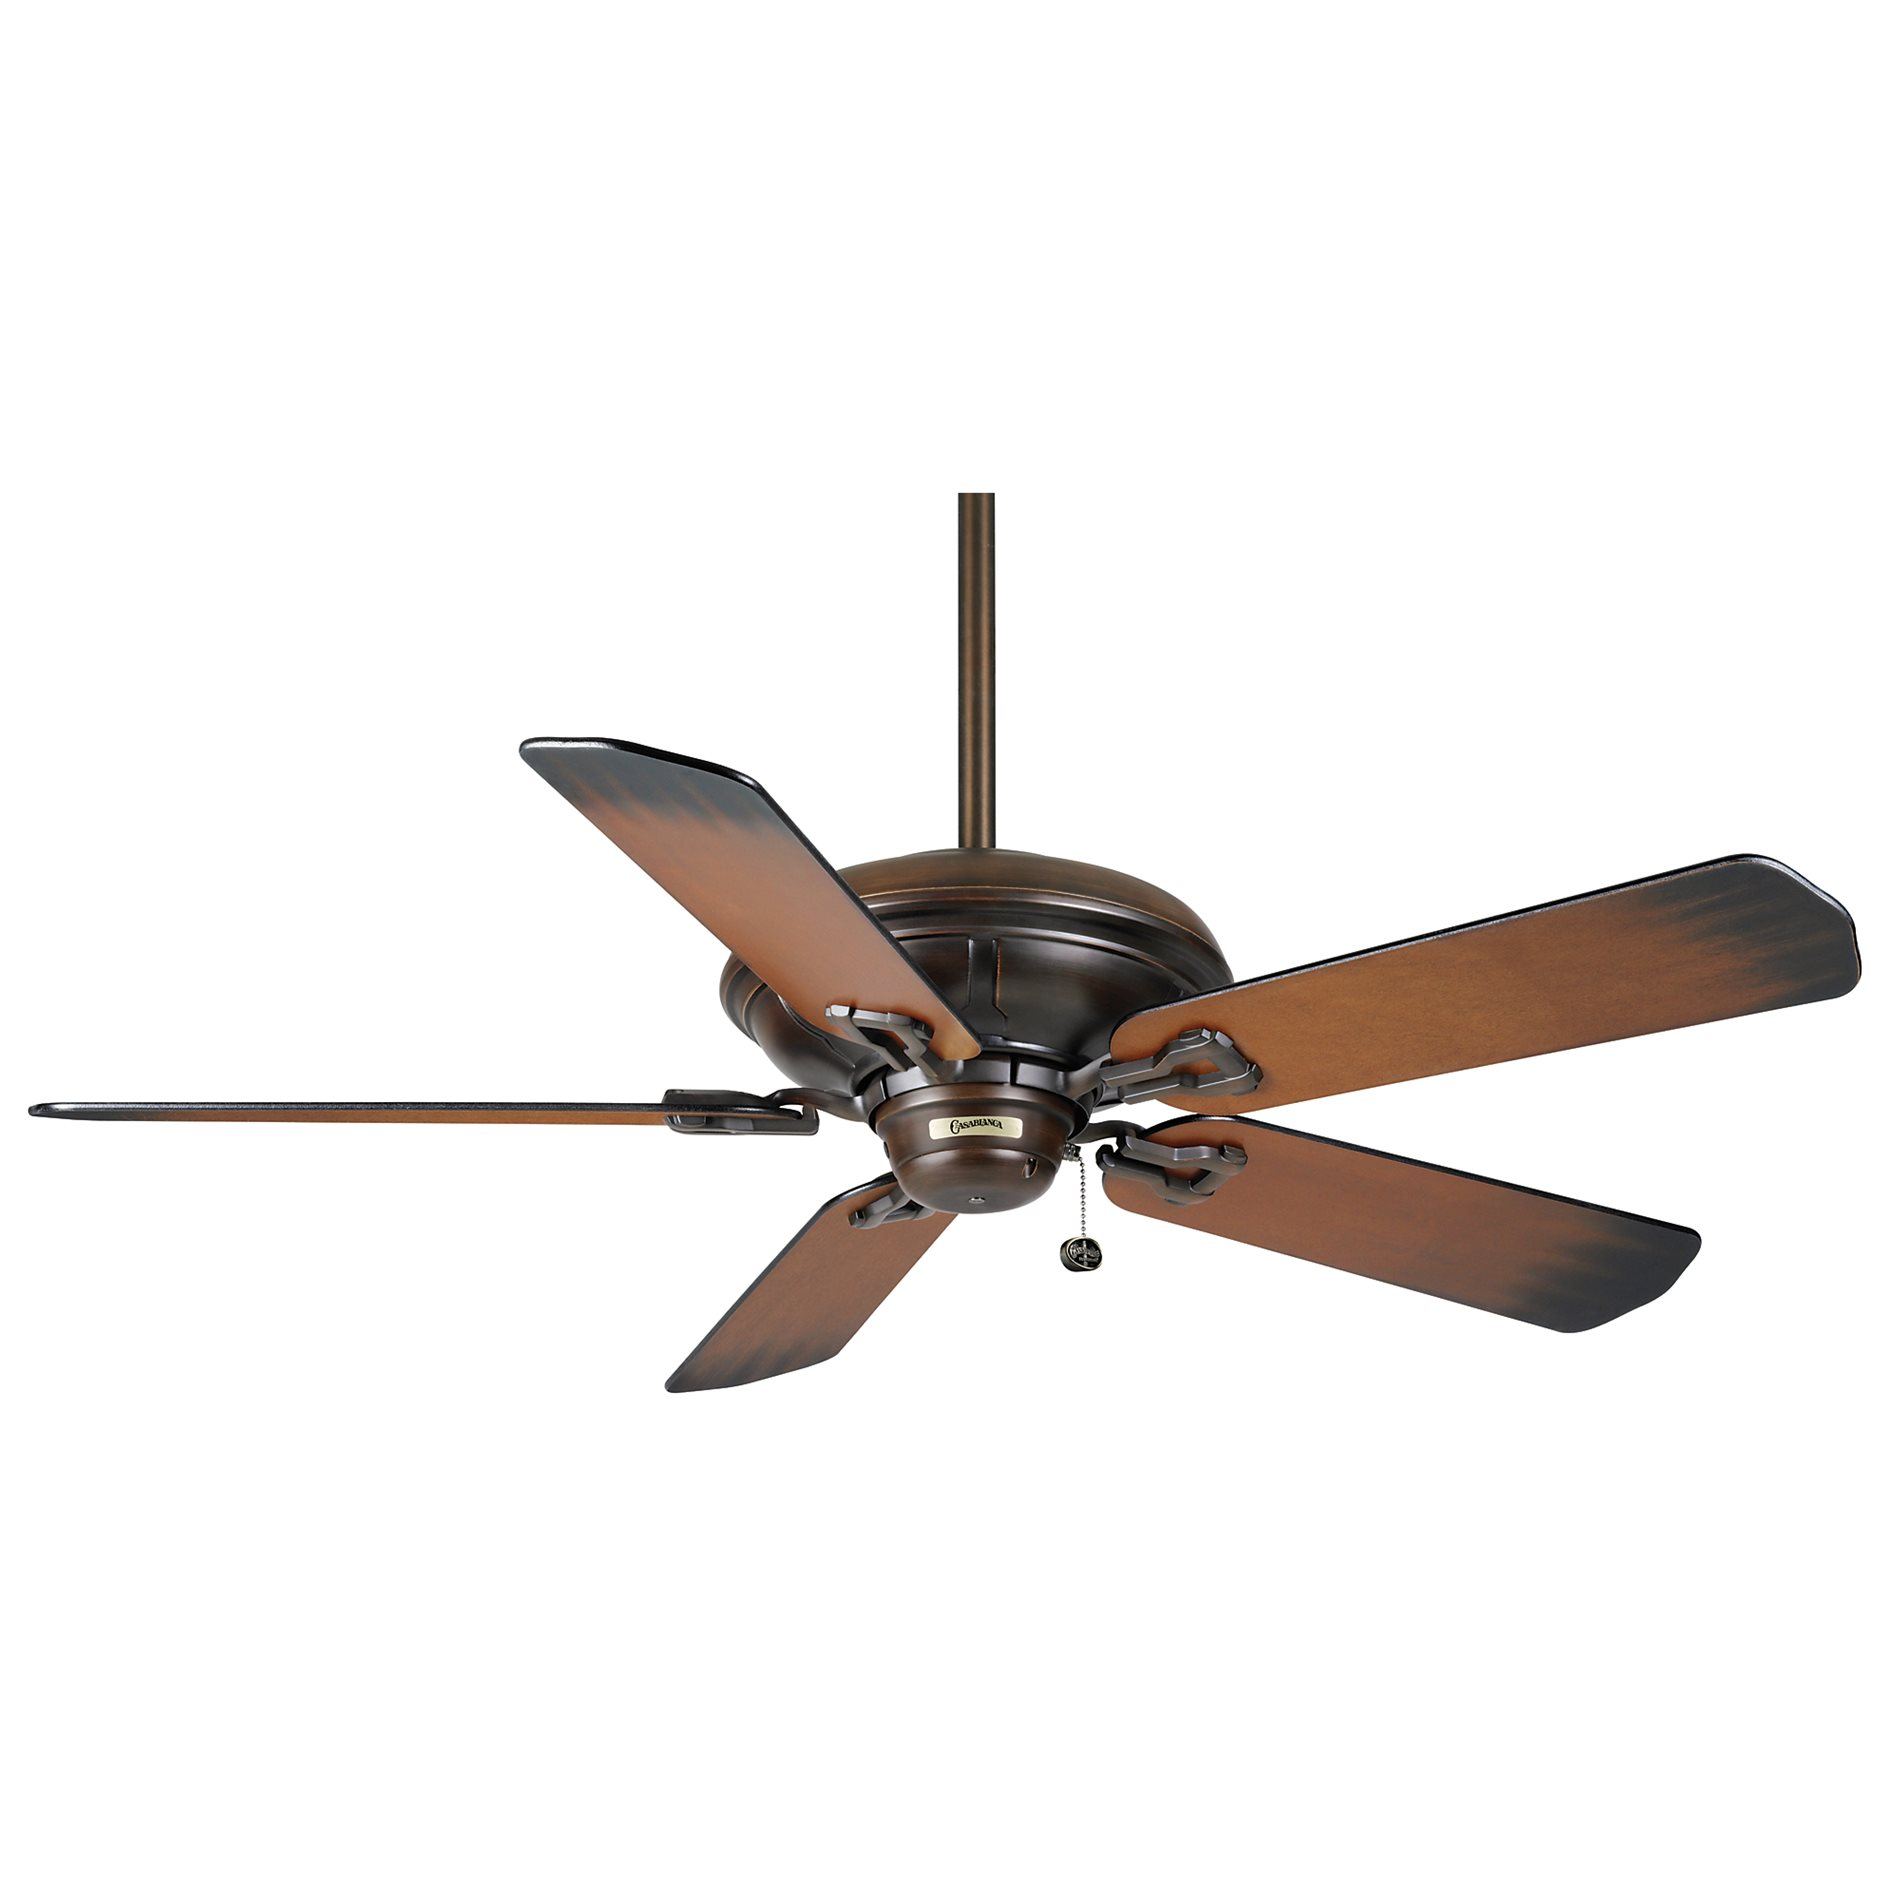 Bath Fan And Light Wiring Diagram 6al Panasonic Industrial Ceiling Fan Noise Ceiling Fan Speed